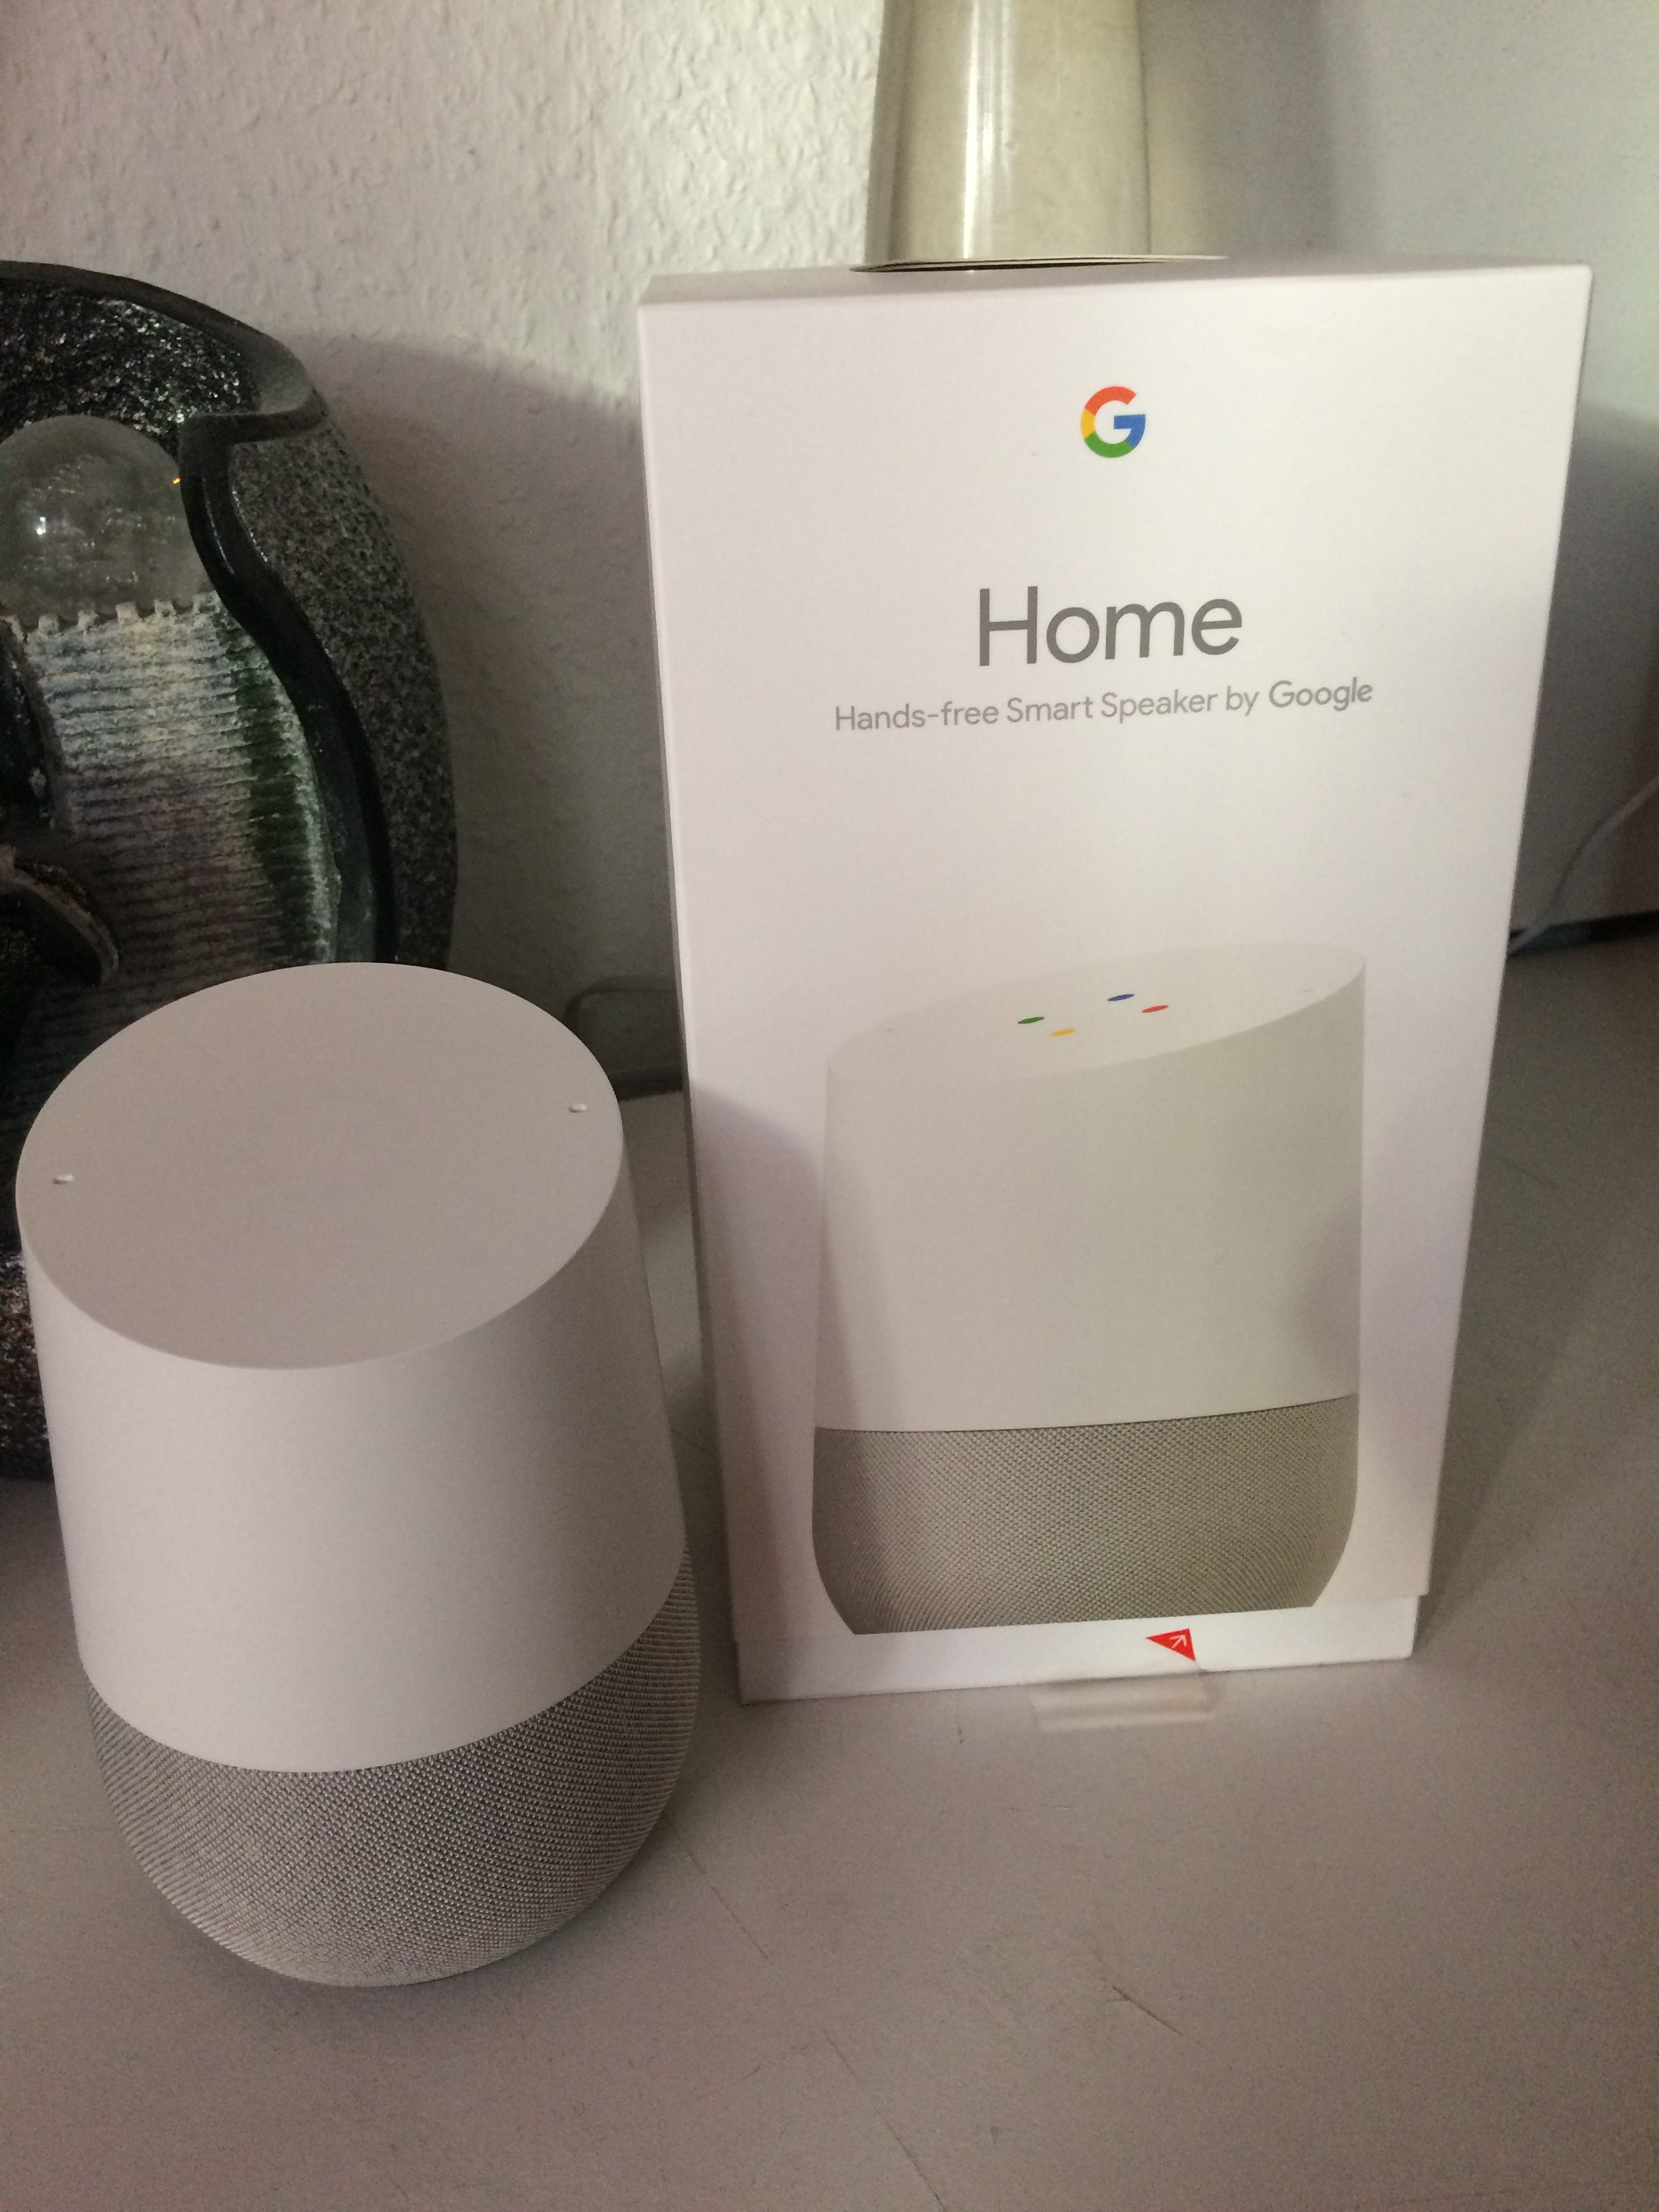 der smarte google home konkurriert mit amazon echo. Black Bedroom Furniture Sets. Home Design Ideas